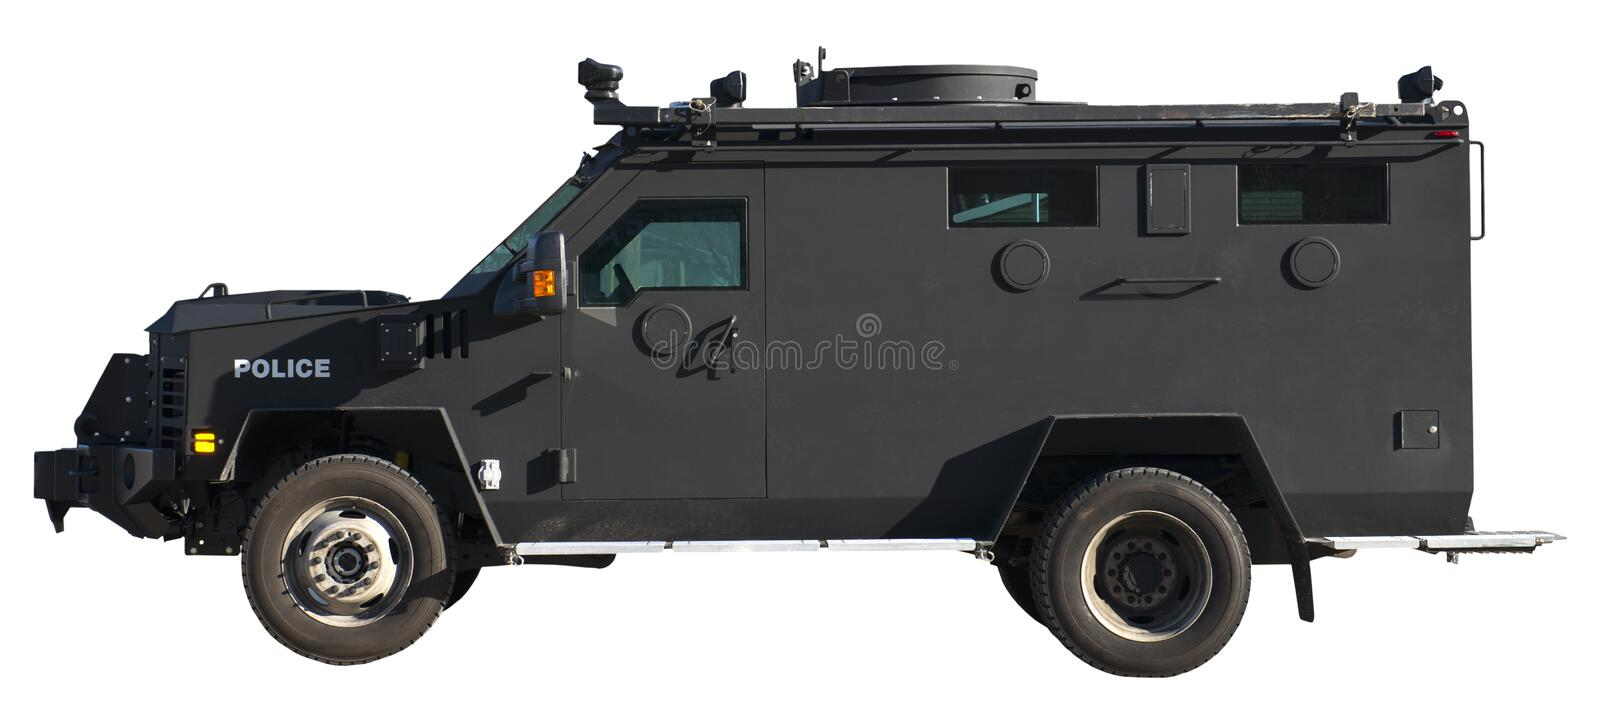 SWAT Team Armored Truck Vehicle Isolated royalty free stock photos